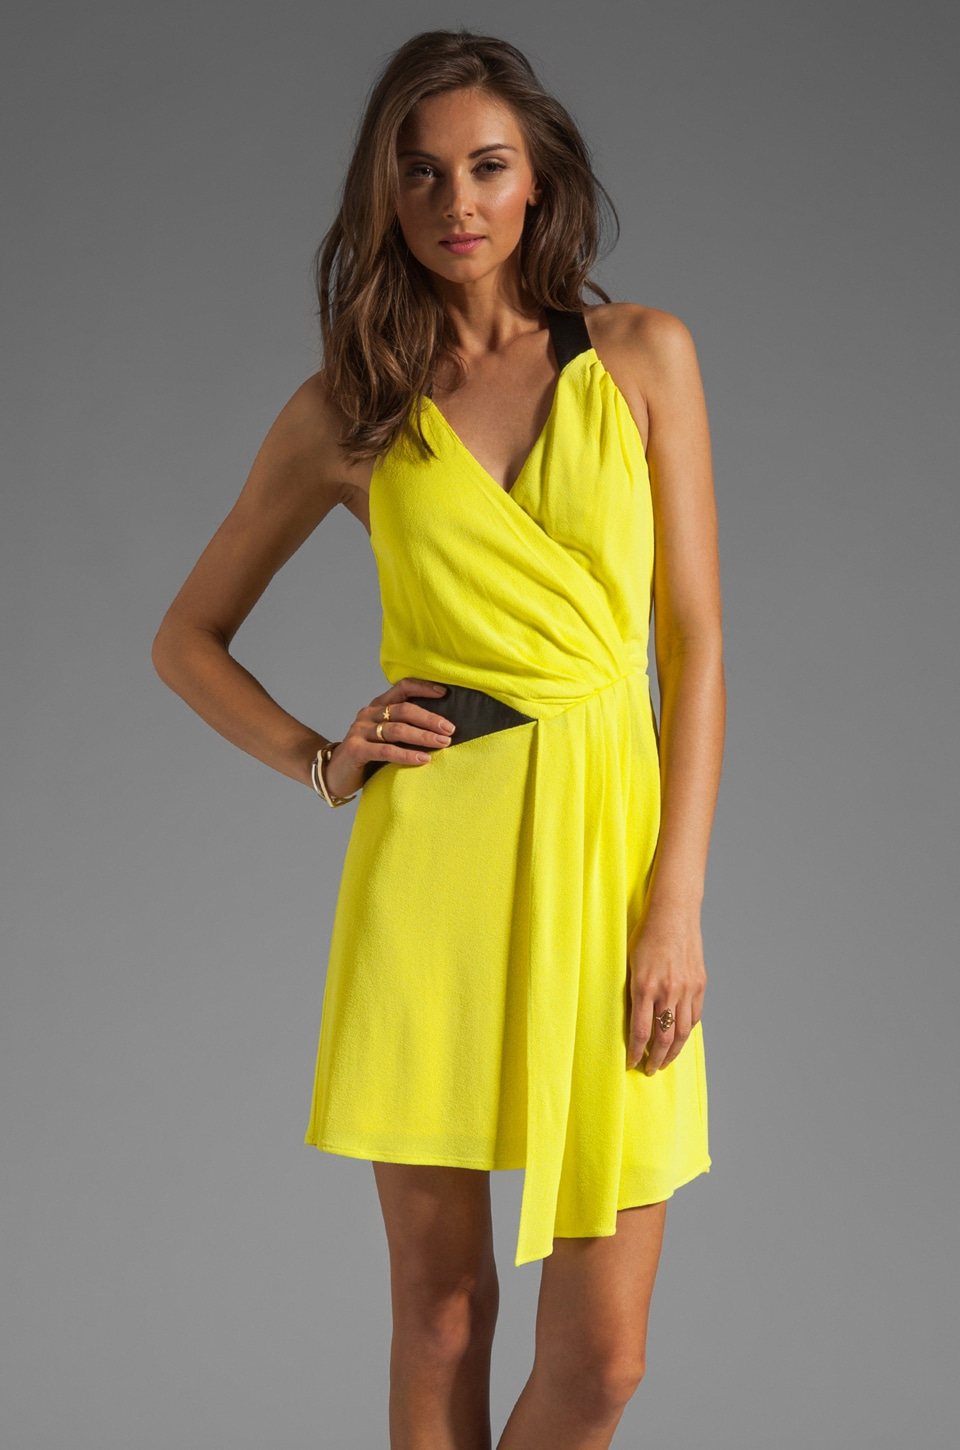 MILLY Italian Crepe Jersey Zip Halter Dress in Lemon